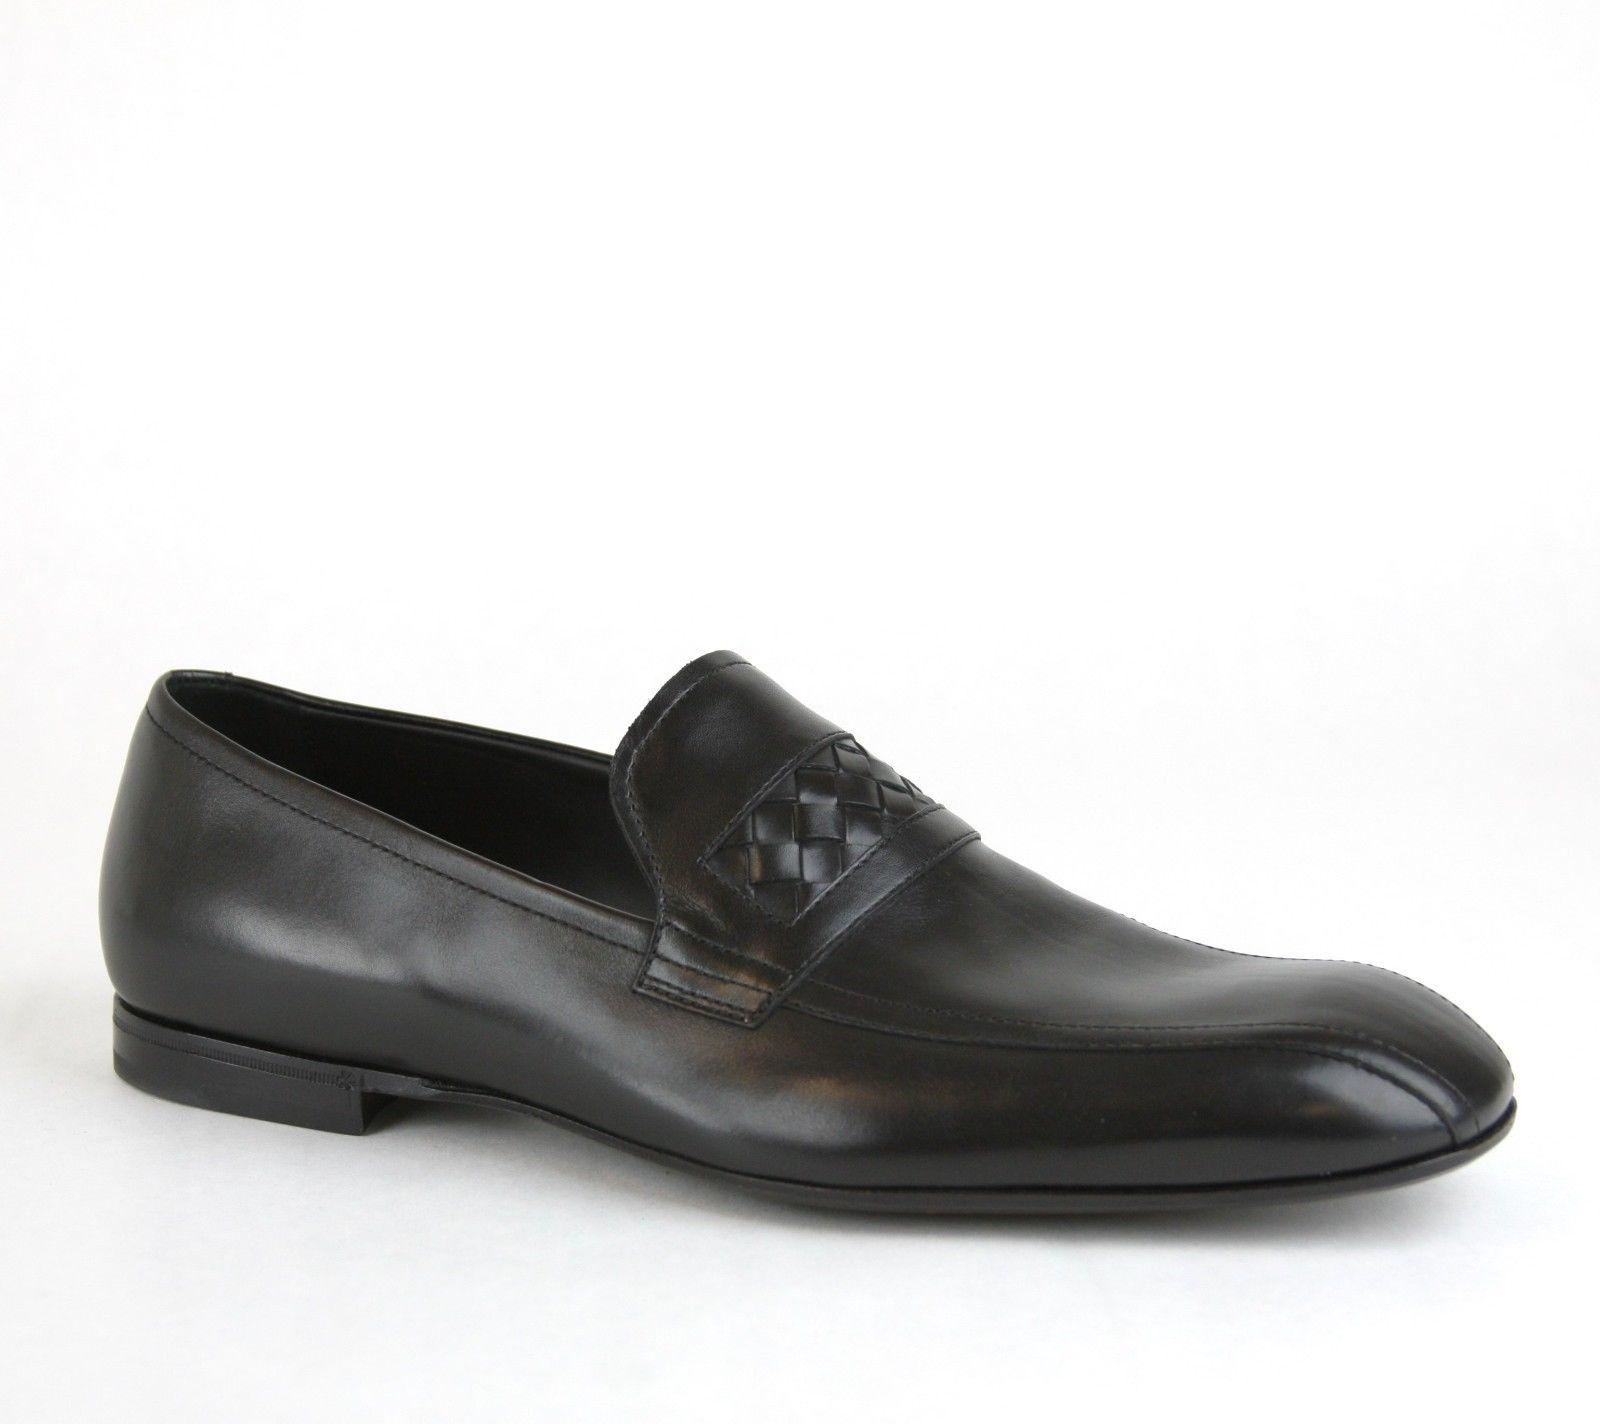 Bottega Veneta Interwoven Leather Loafers